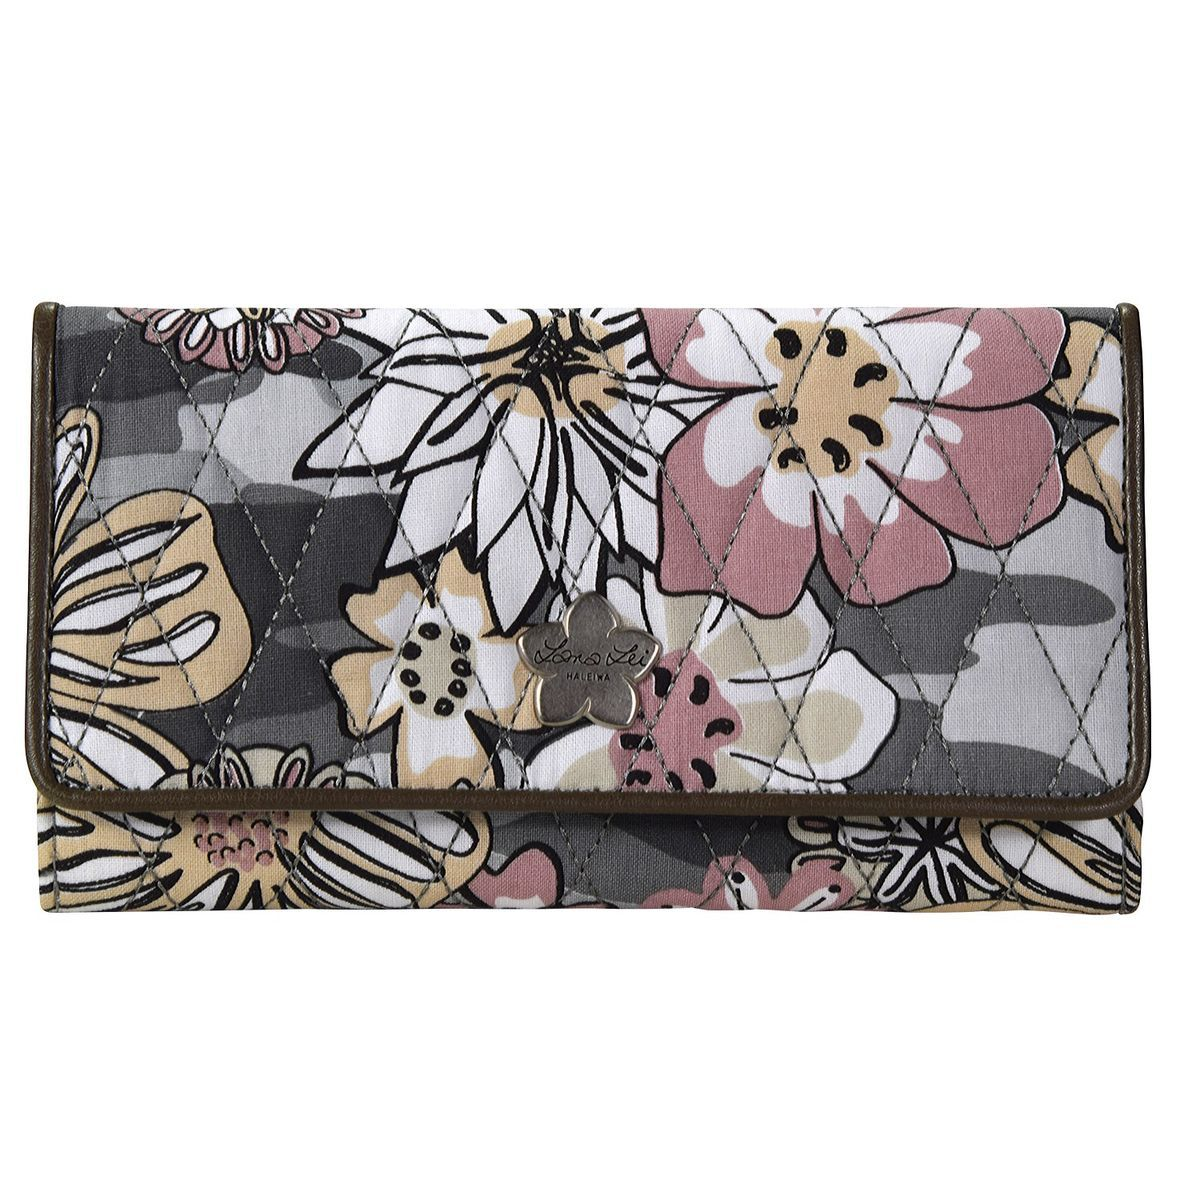 Lana Lei Accessories Clutch Geldbörse 19 cm, base grey